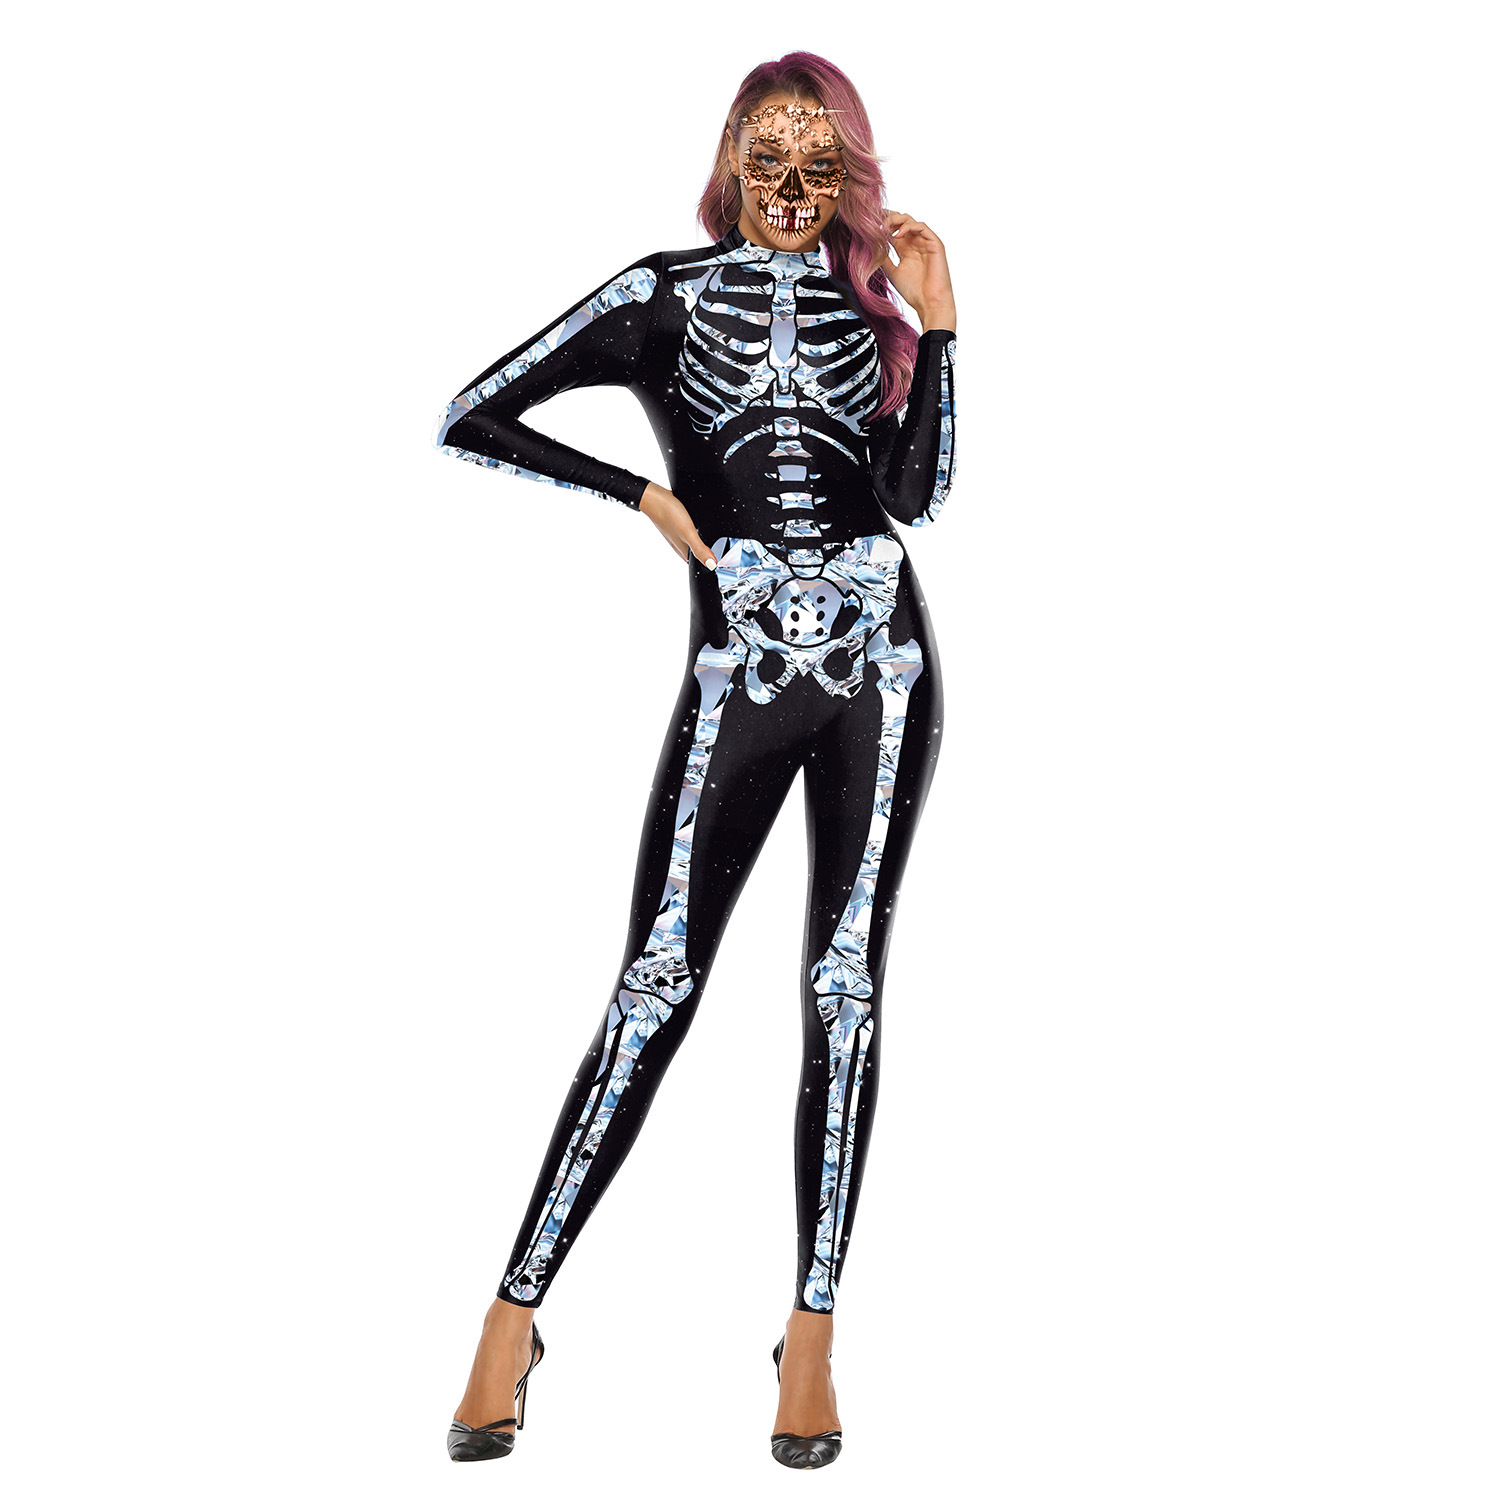 Female Skeleton Printing Jumpsuits Scary Cosplaying for Halloween Festival  WB142-004_L